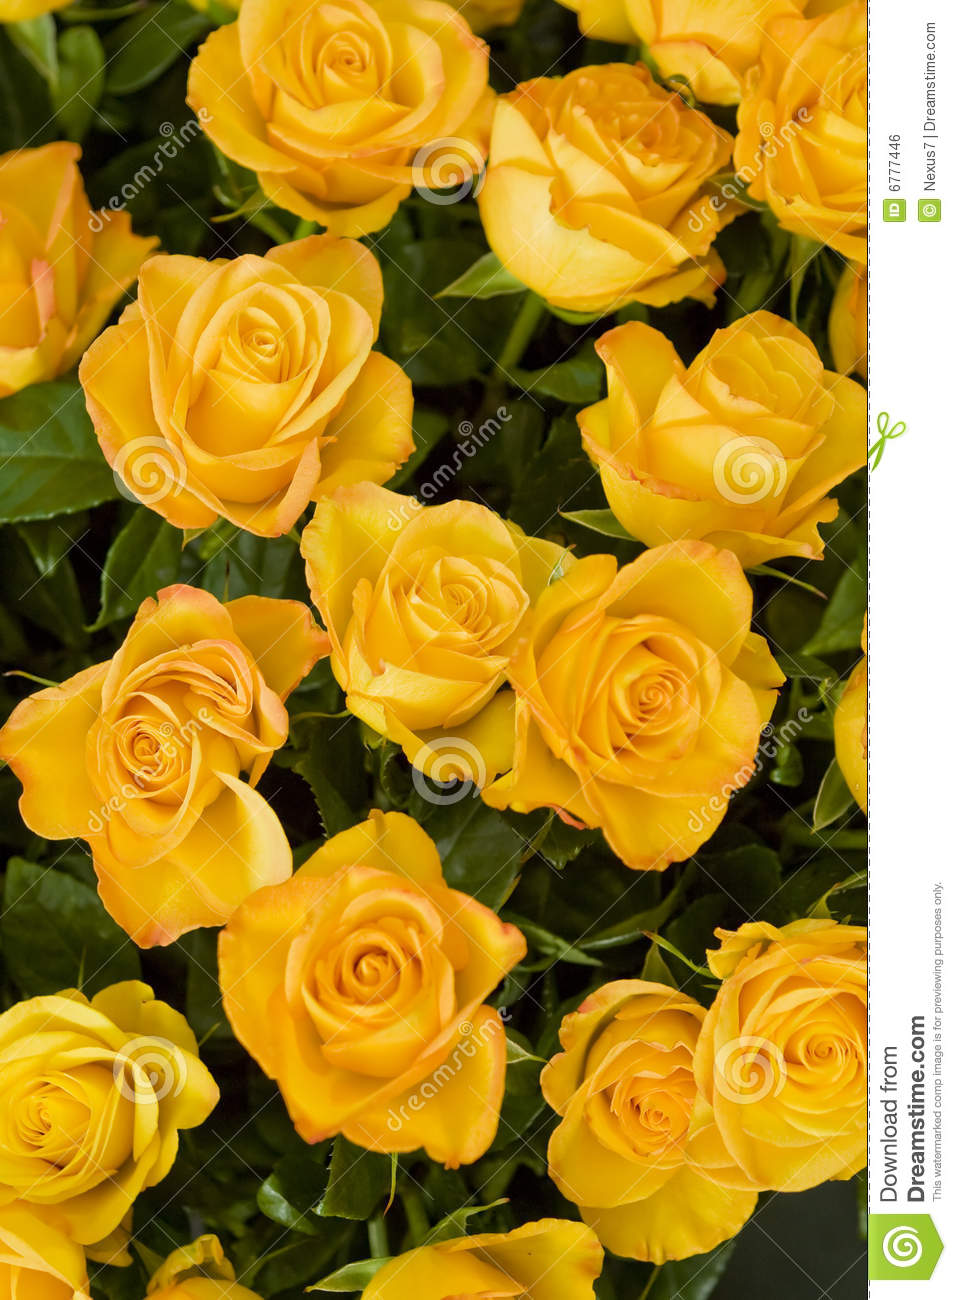 Yellow Roses Royalty Free Stock Image - Image: 6777446